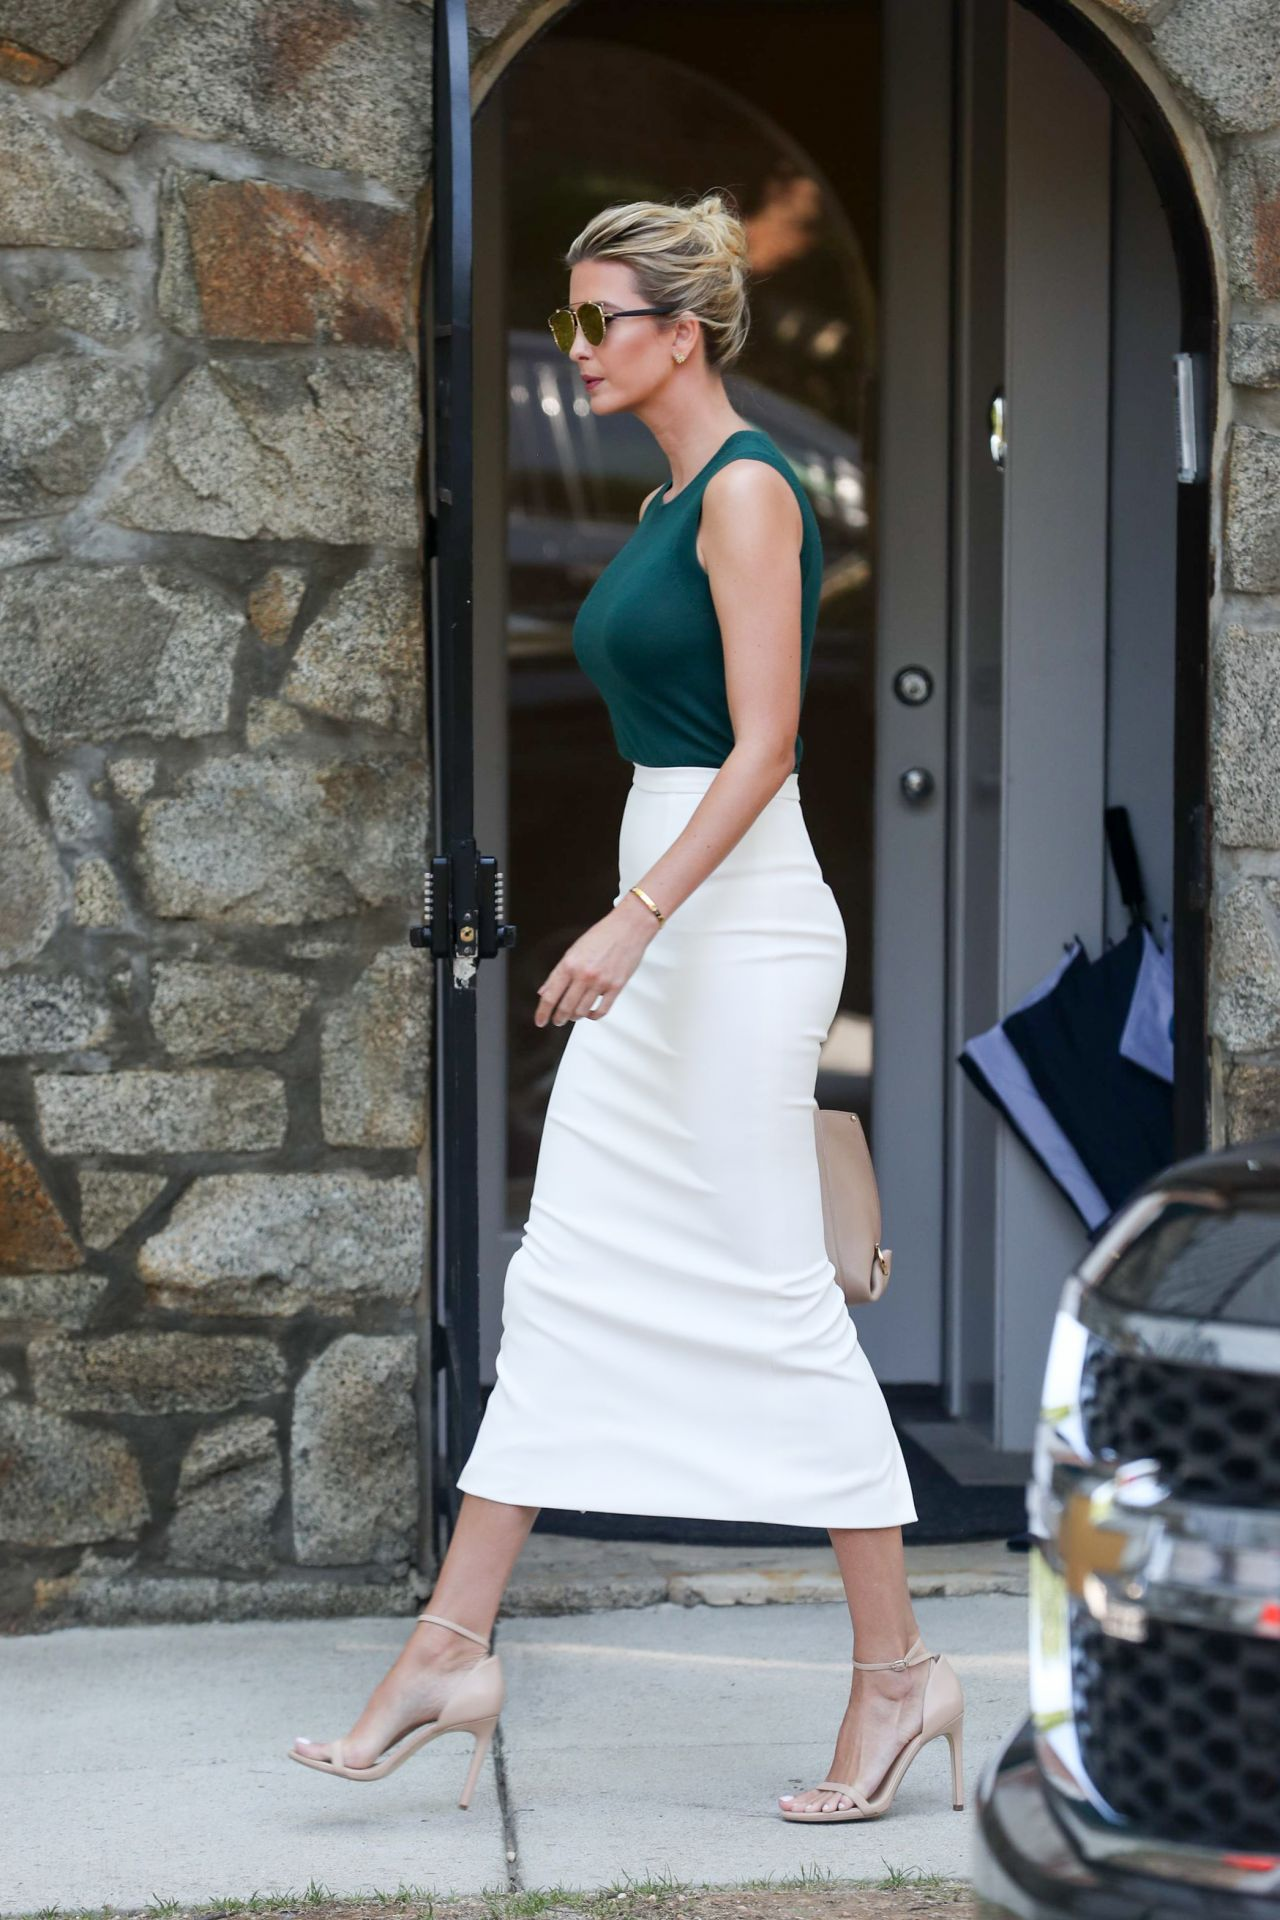 Ivanka Trump - Heads to Work in Washington, D.C. 08/01/2017